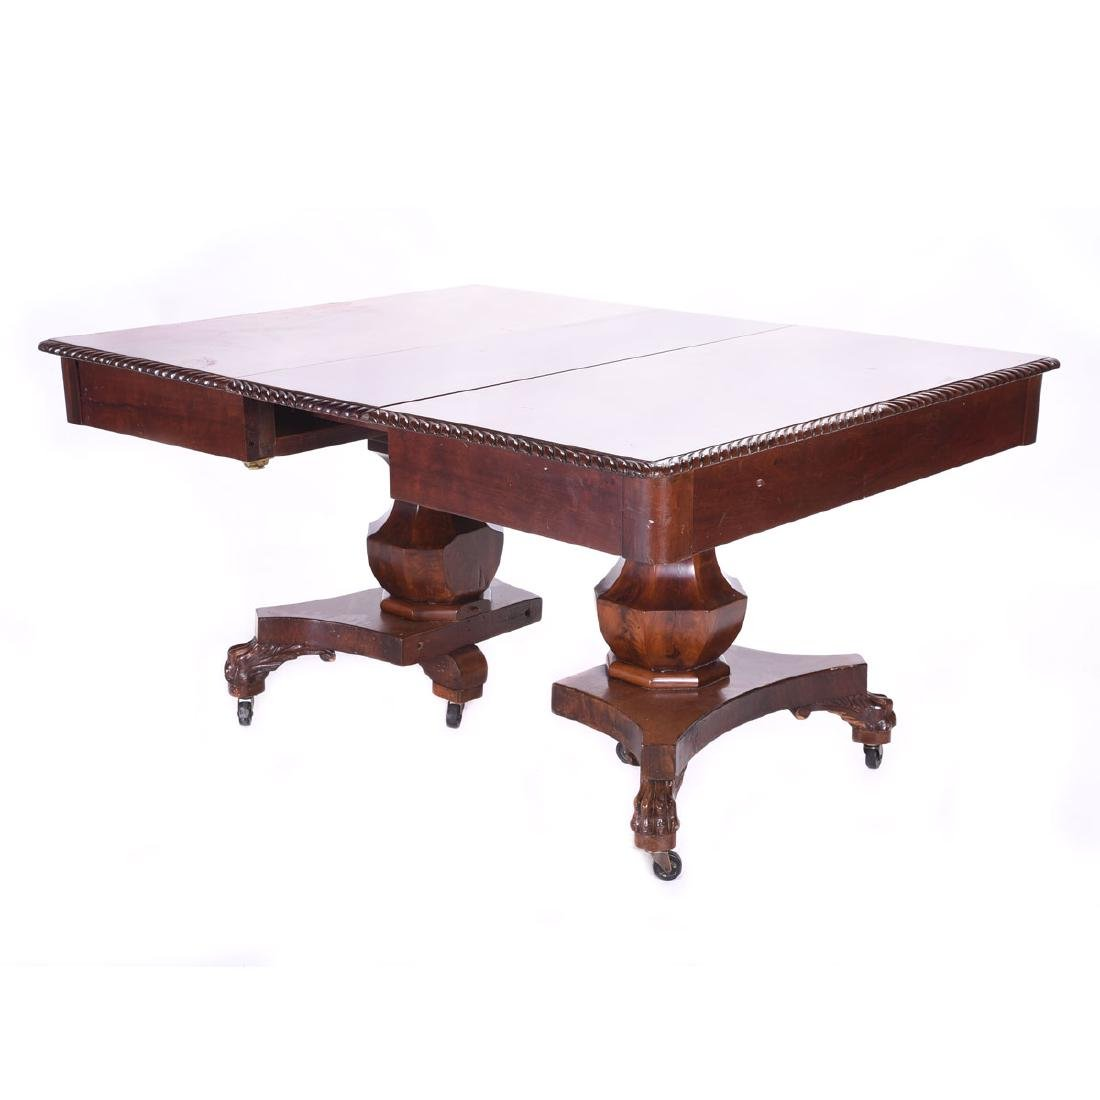 American Classical Revival Mahogany Dining Table with